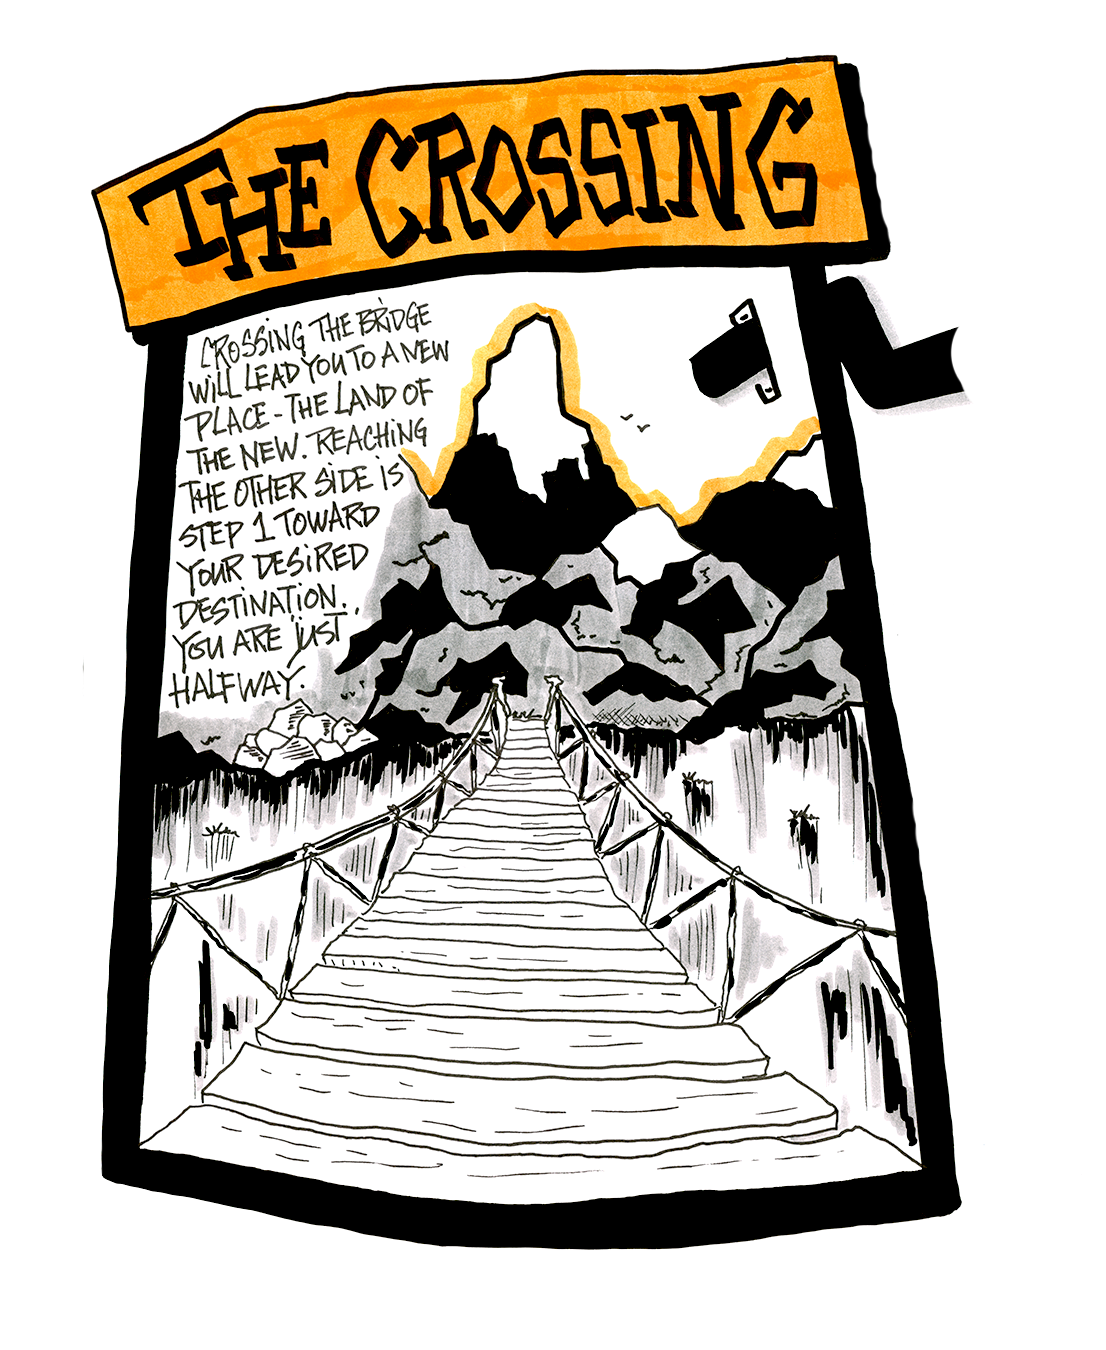 8-the crossing.png